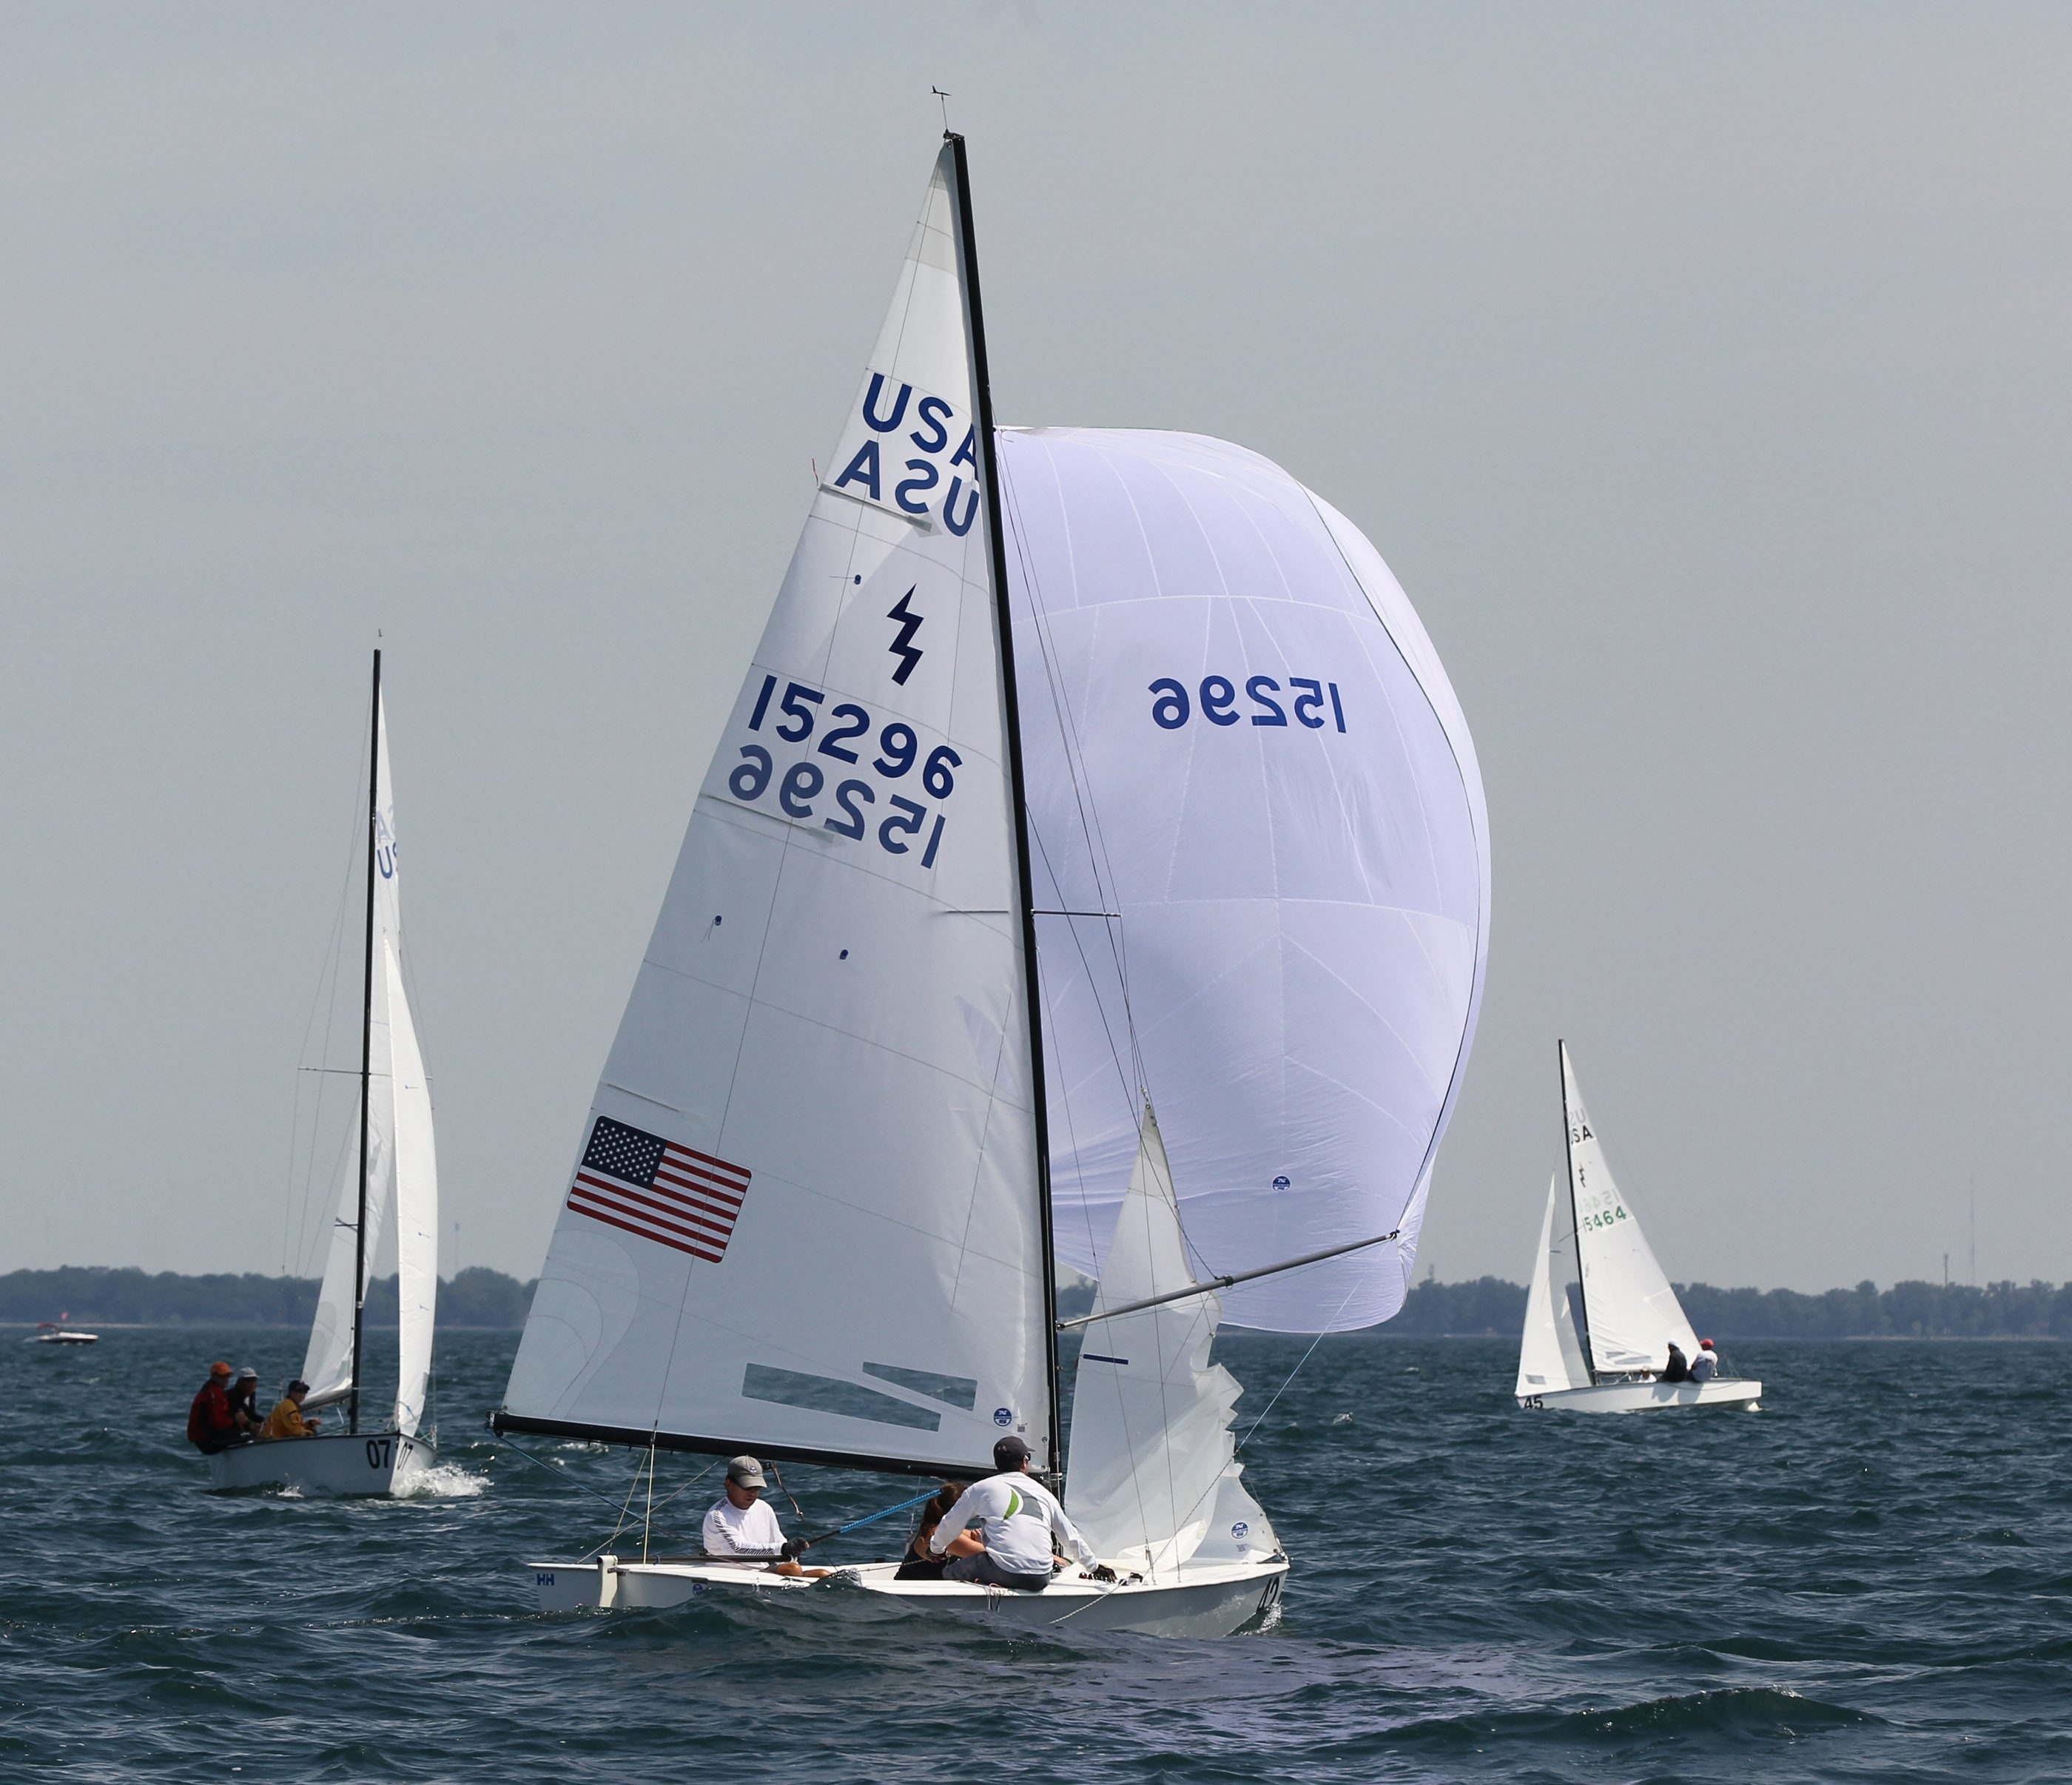 Geoff Becker (front) won the 2015 World Championship Lightning Class title on Saturday. The weeklong regatta was staged by the Buffalo Canoe Club.